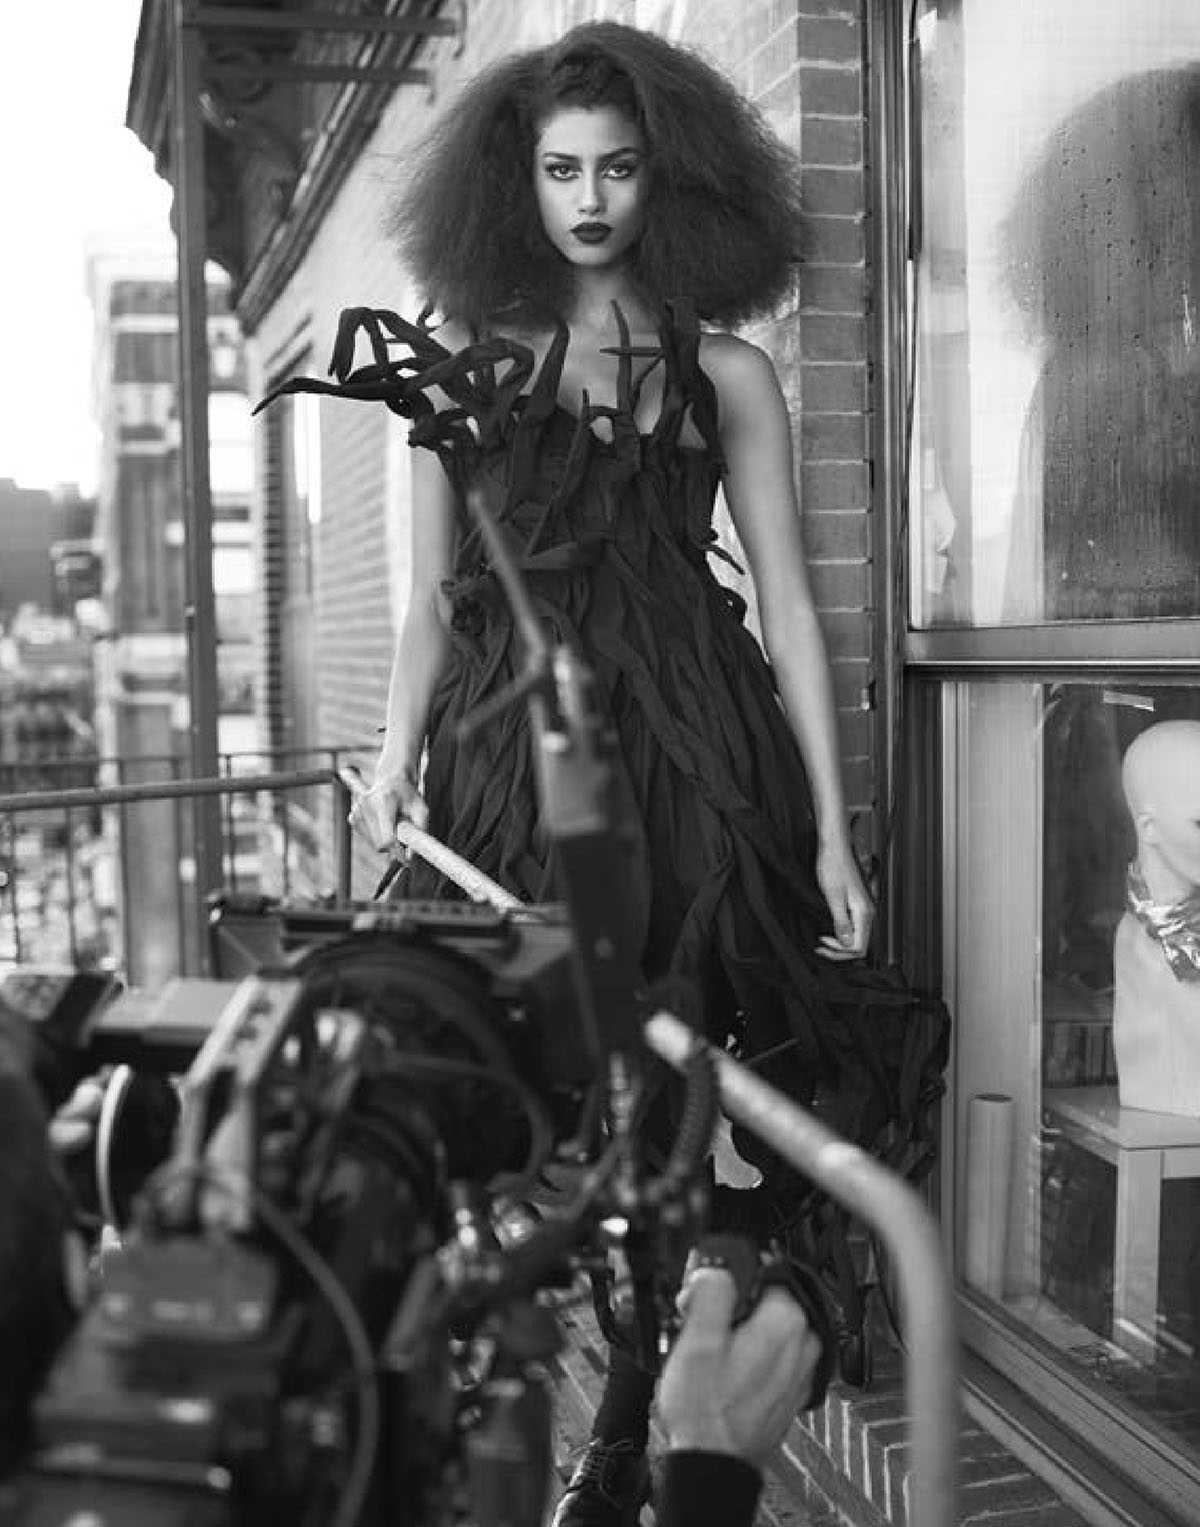 Imaan Hammam by Ethan James Green for M Le magazine du Monde February 27th, 2021